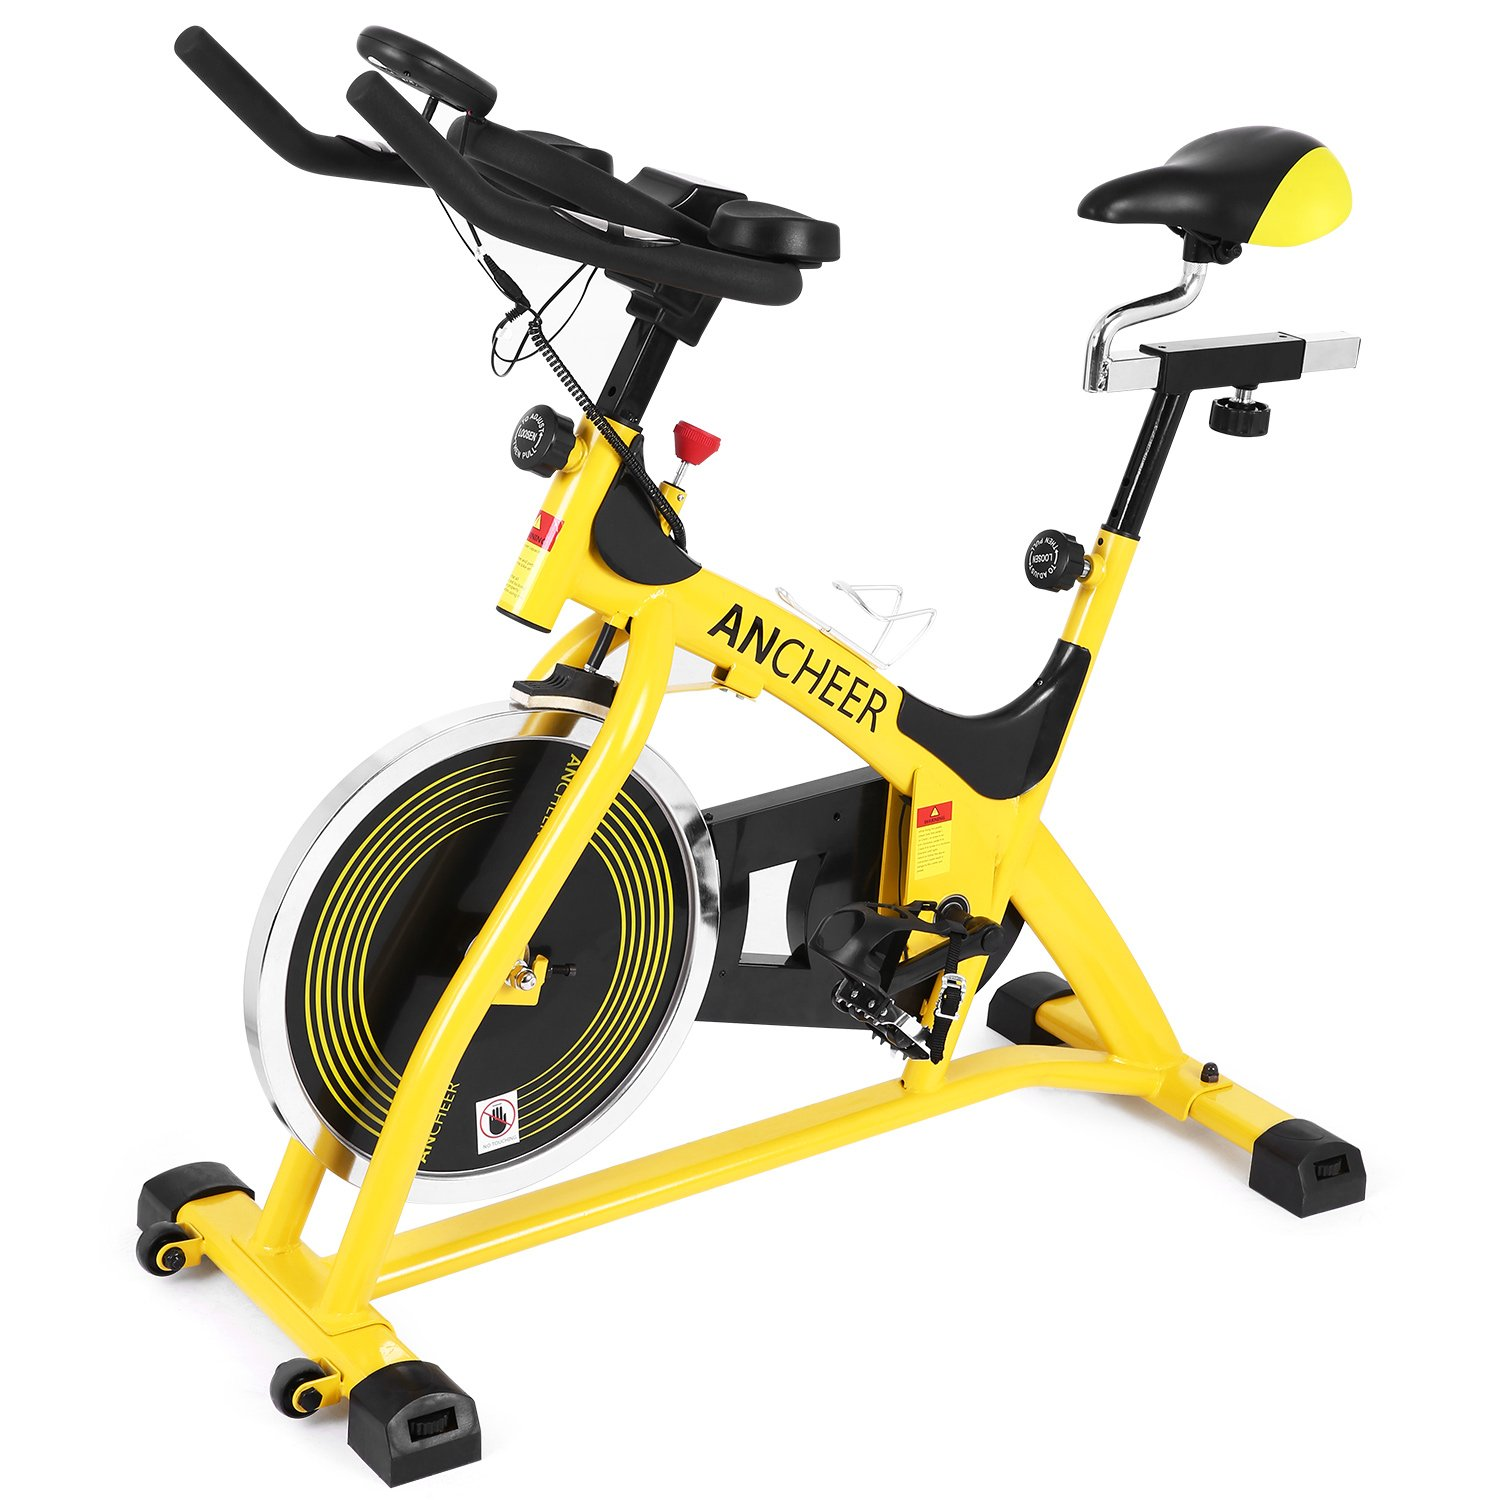 ANCHEER Stationary Bike, 40 LBS Flywheel Belt Drive Indoor Cycling Exercise Bike with Pulse, Elbow Tray (Model: ANCHEER-A5001) (Yellow) by ANCHEER (Image #1)